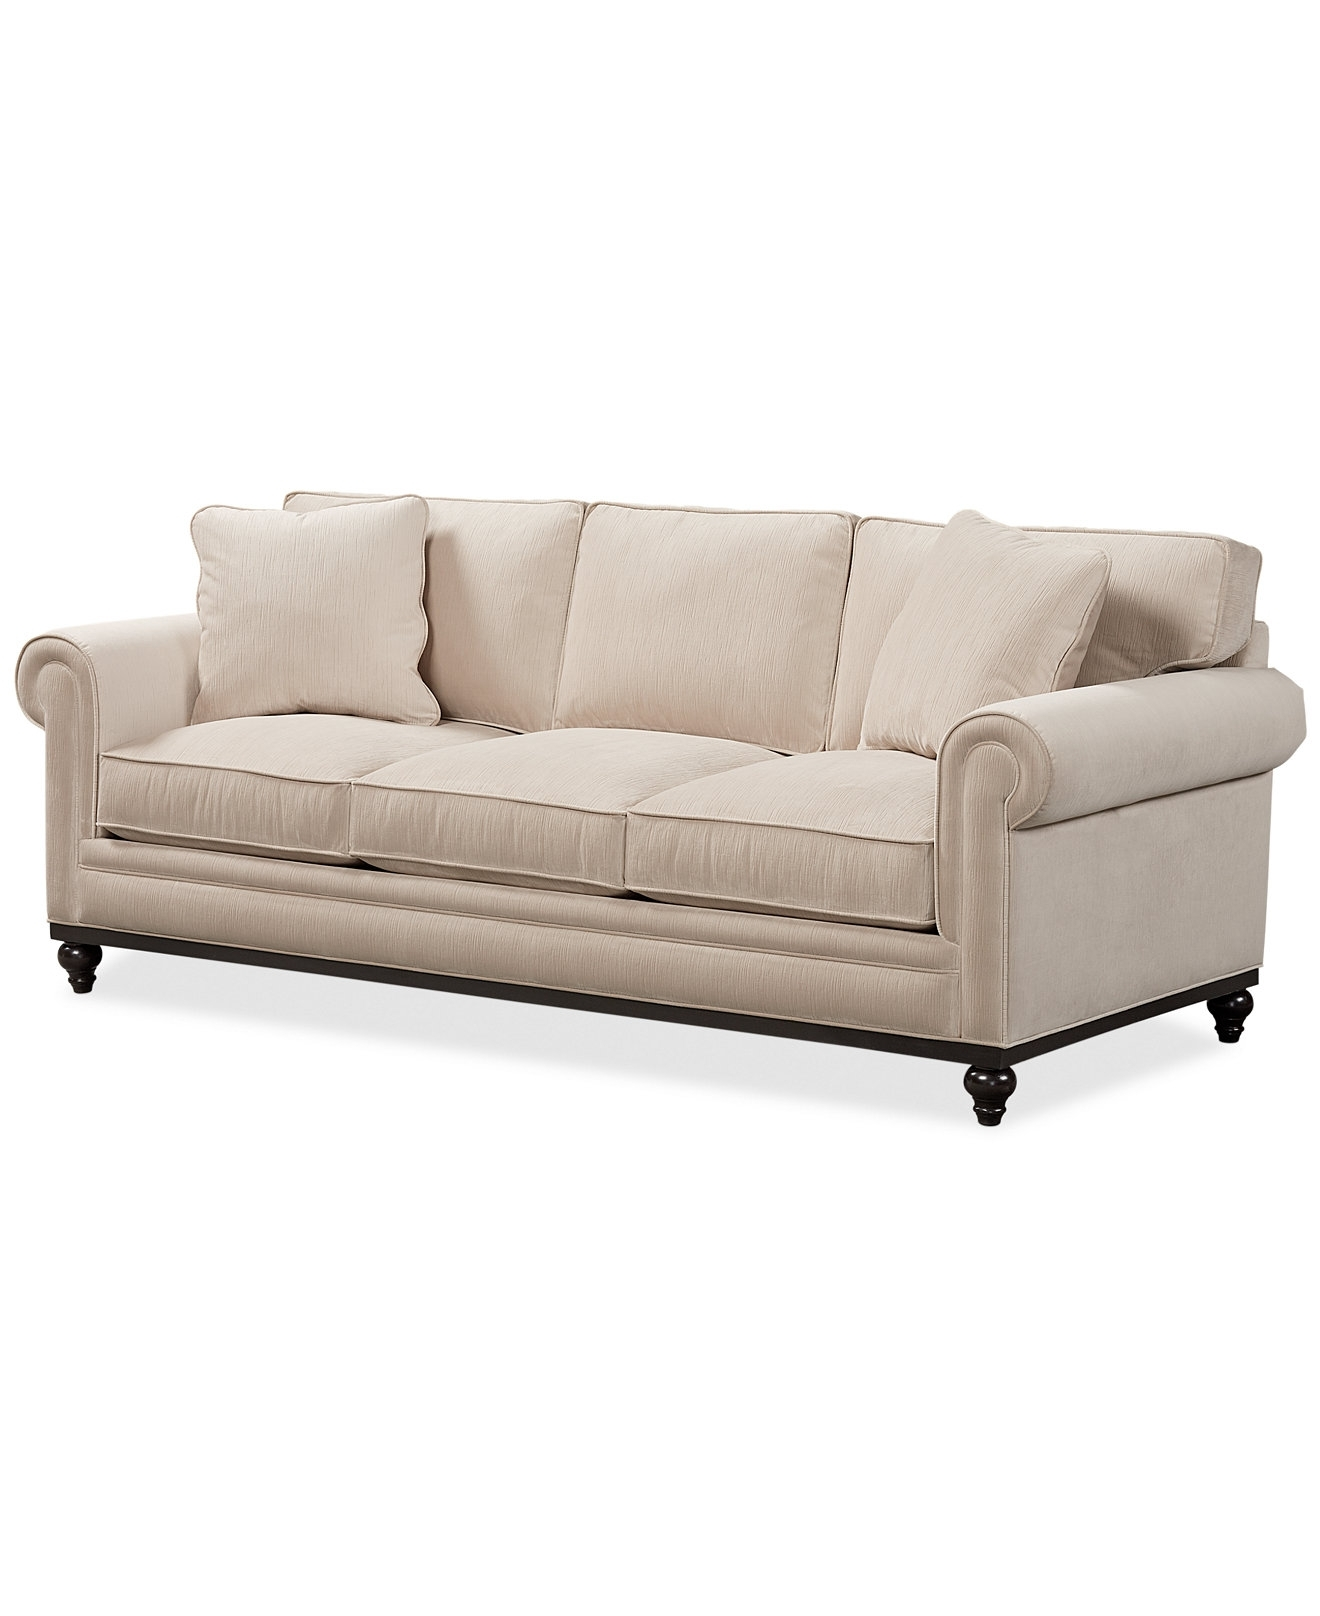 Fashionable Martha Stewart Collection New Club Fabric Roll Arm Sofa – Couches Throughout Chaise Lounge Chairs At Macy's (View 12 of 15)